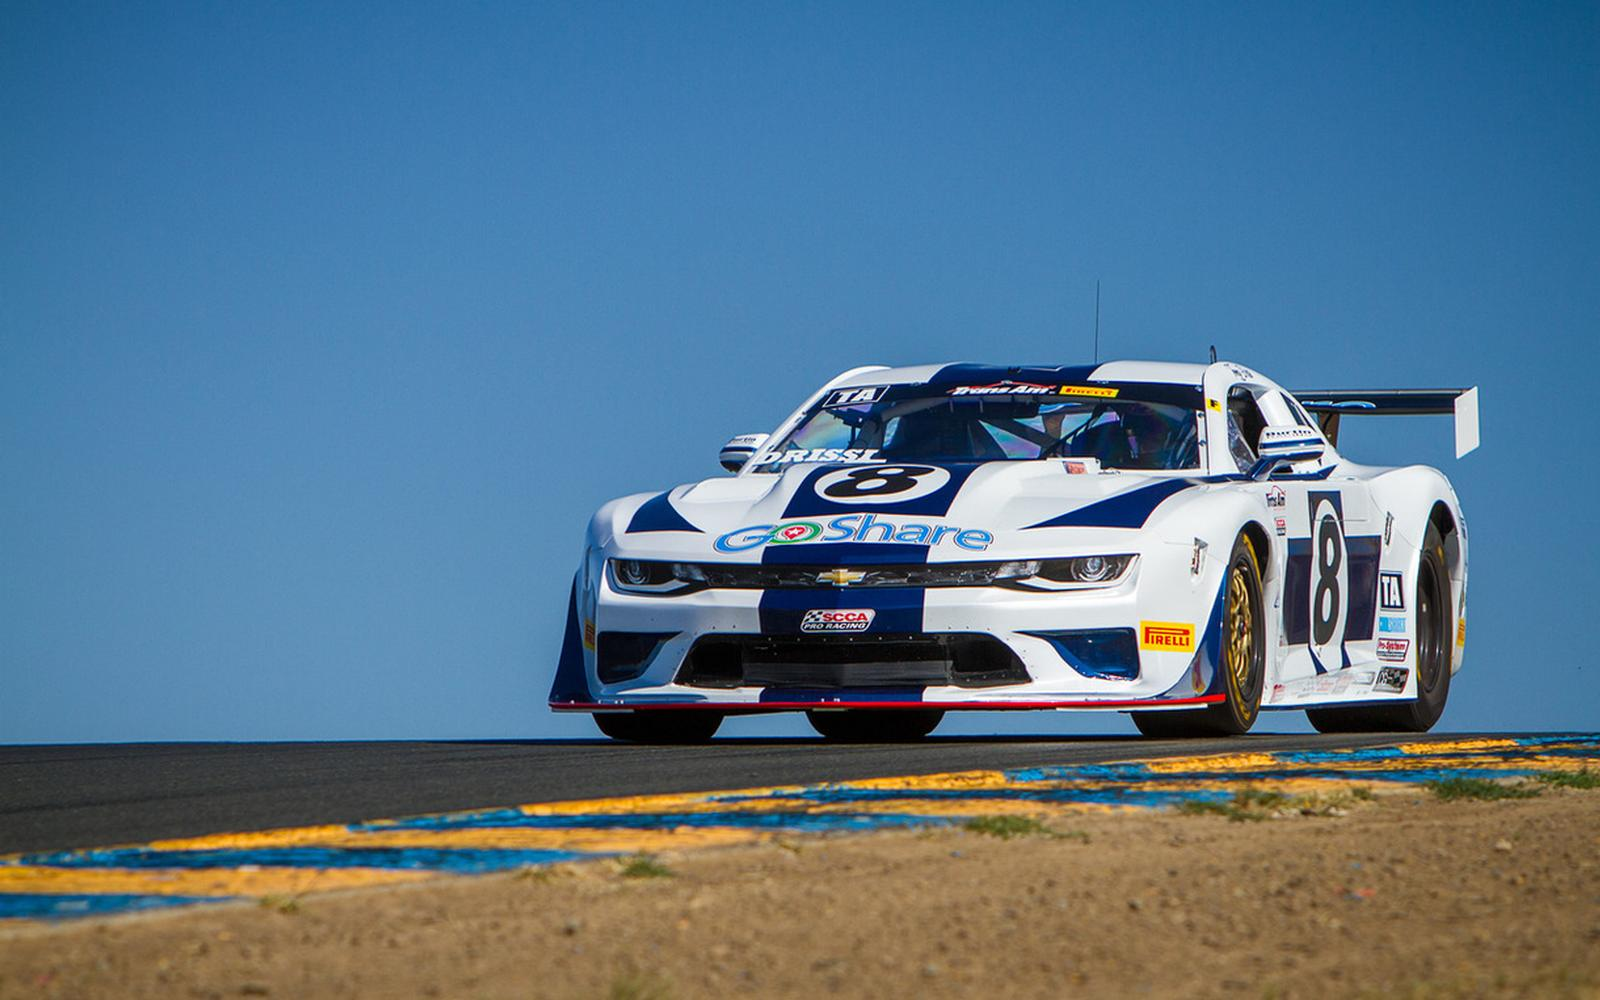 Hard charging Drissi grabs podium finish at Sonoma